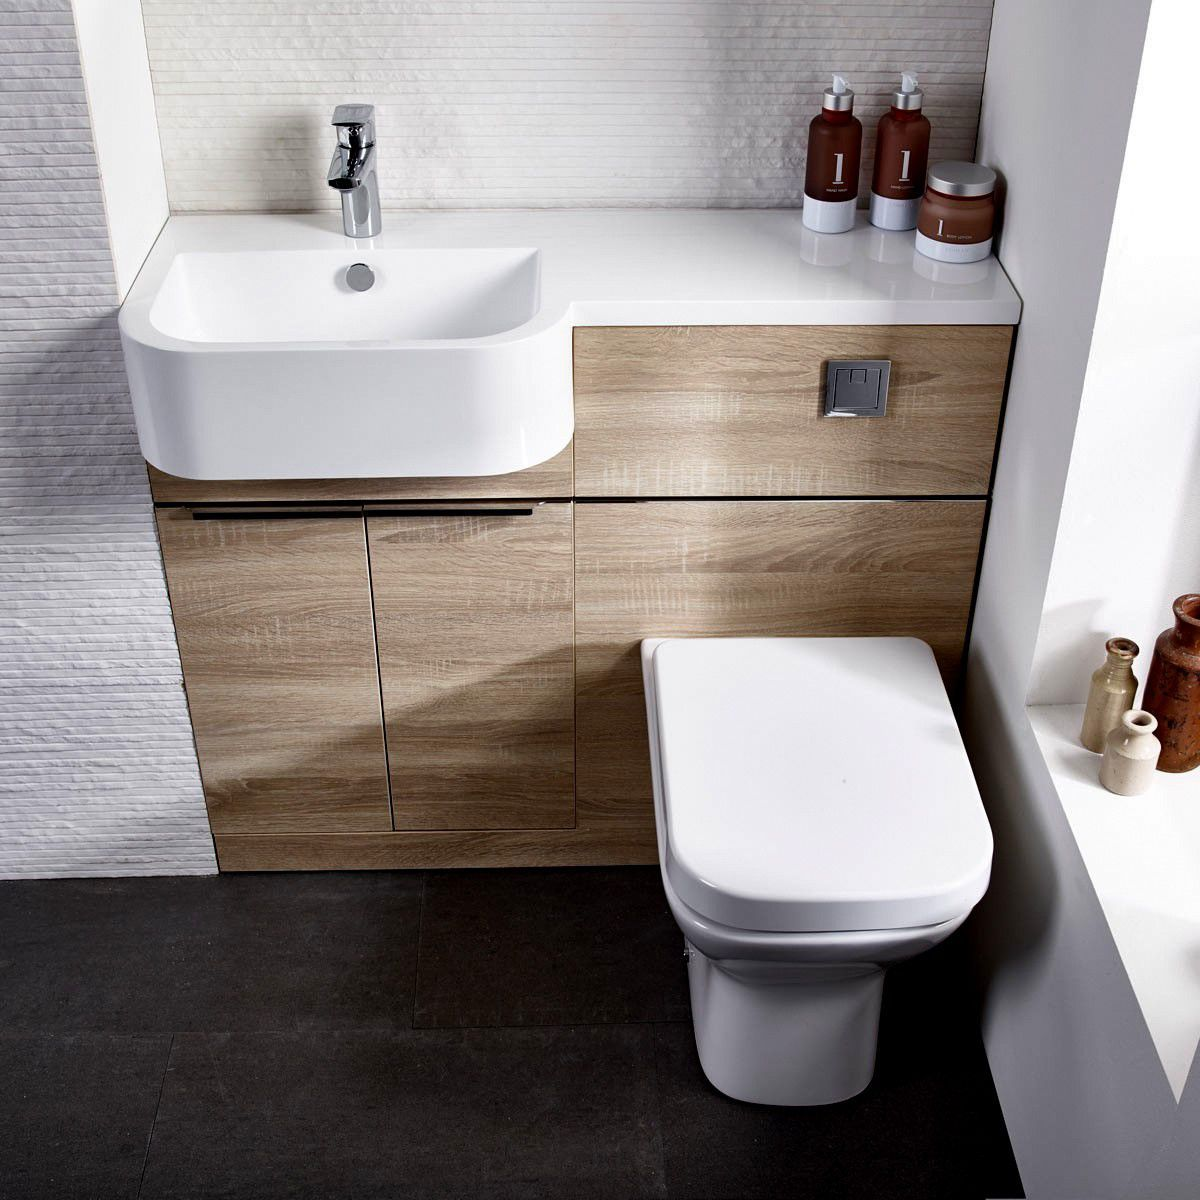 origins match compact cloakroom vanity unit uk bathrooms rh ukbathrooms com Bathroom Vanity Unit Wall bathroom cloakroom vanity units